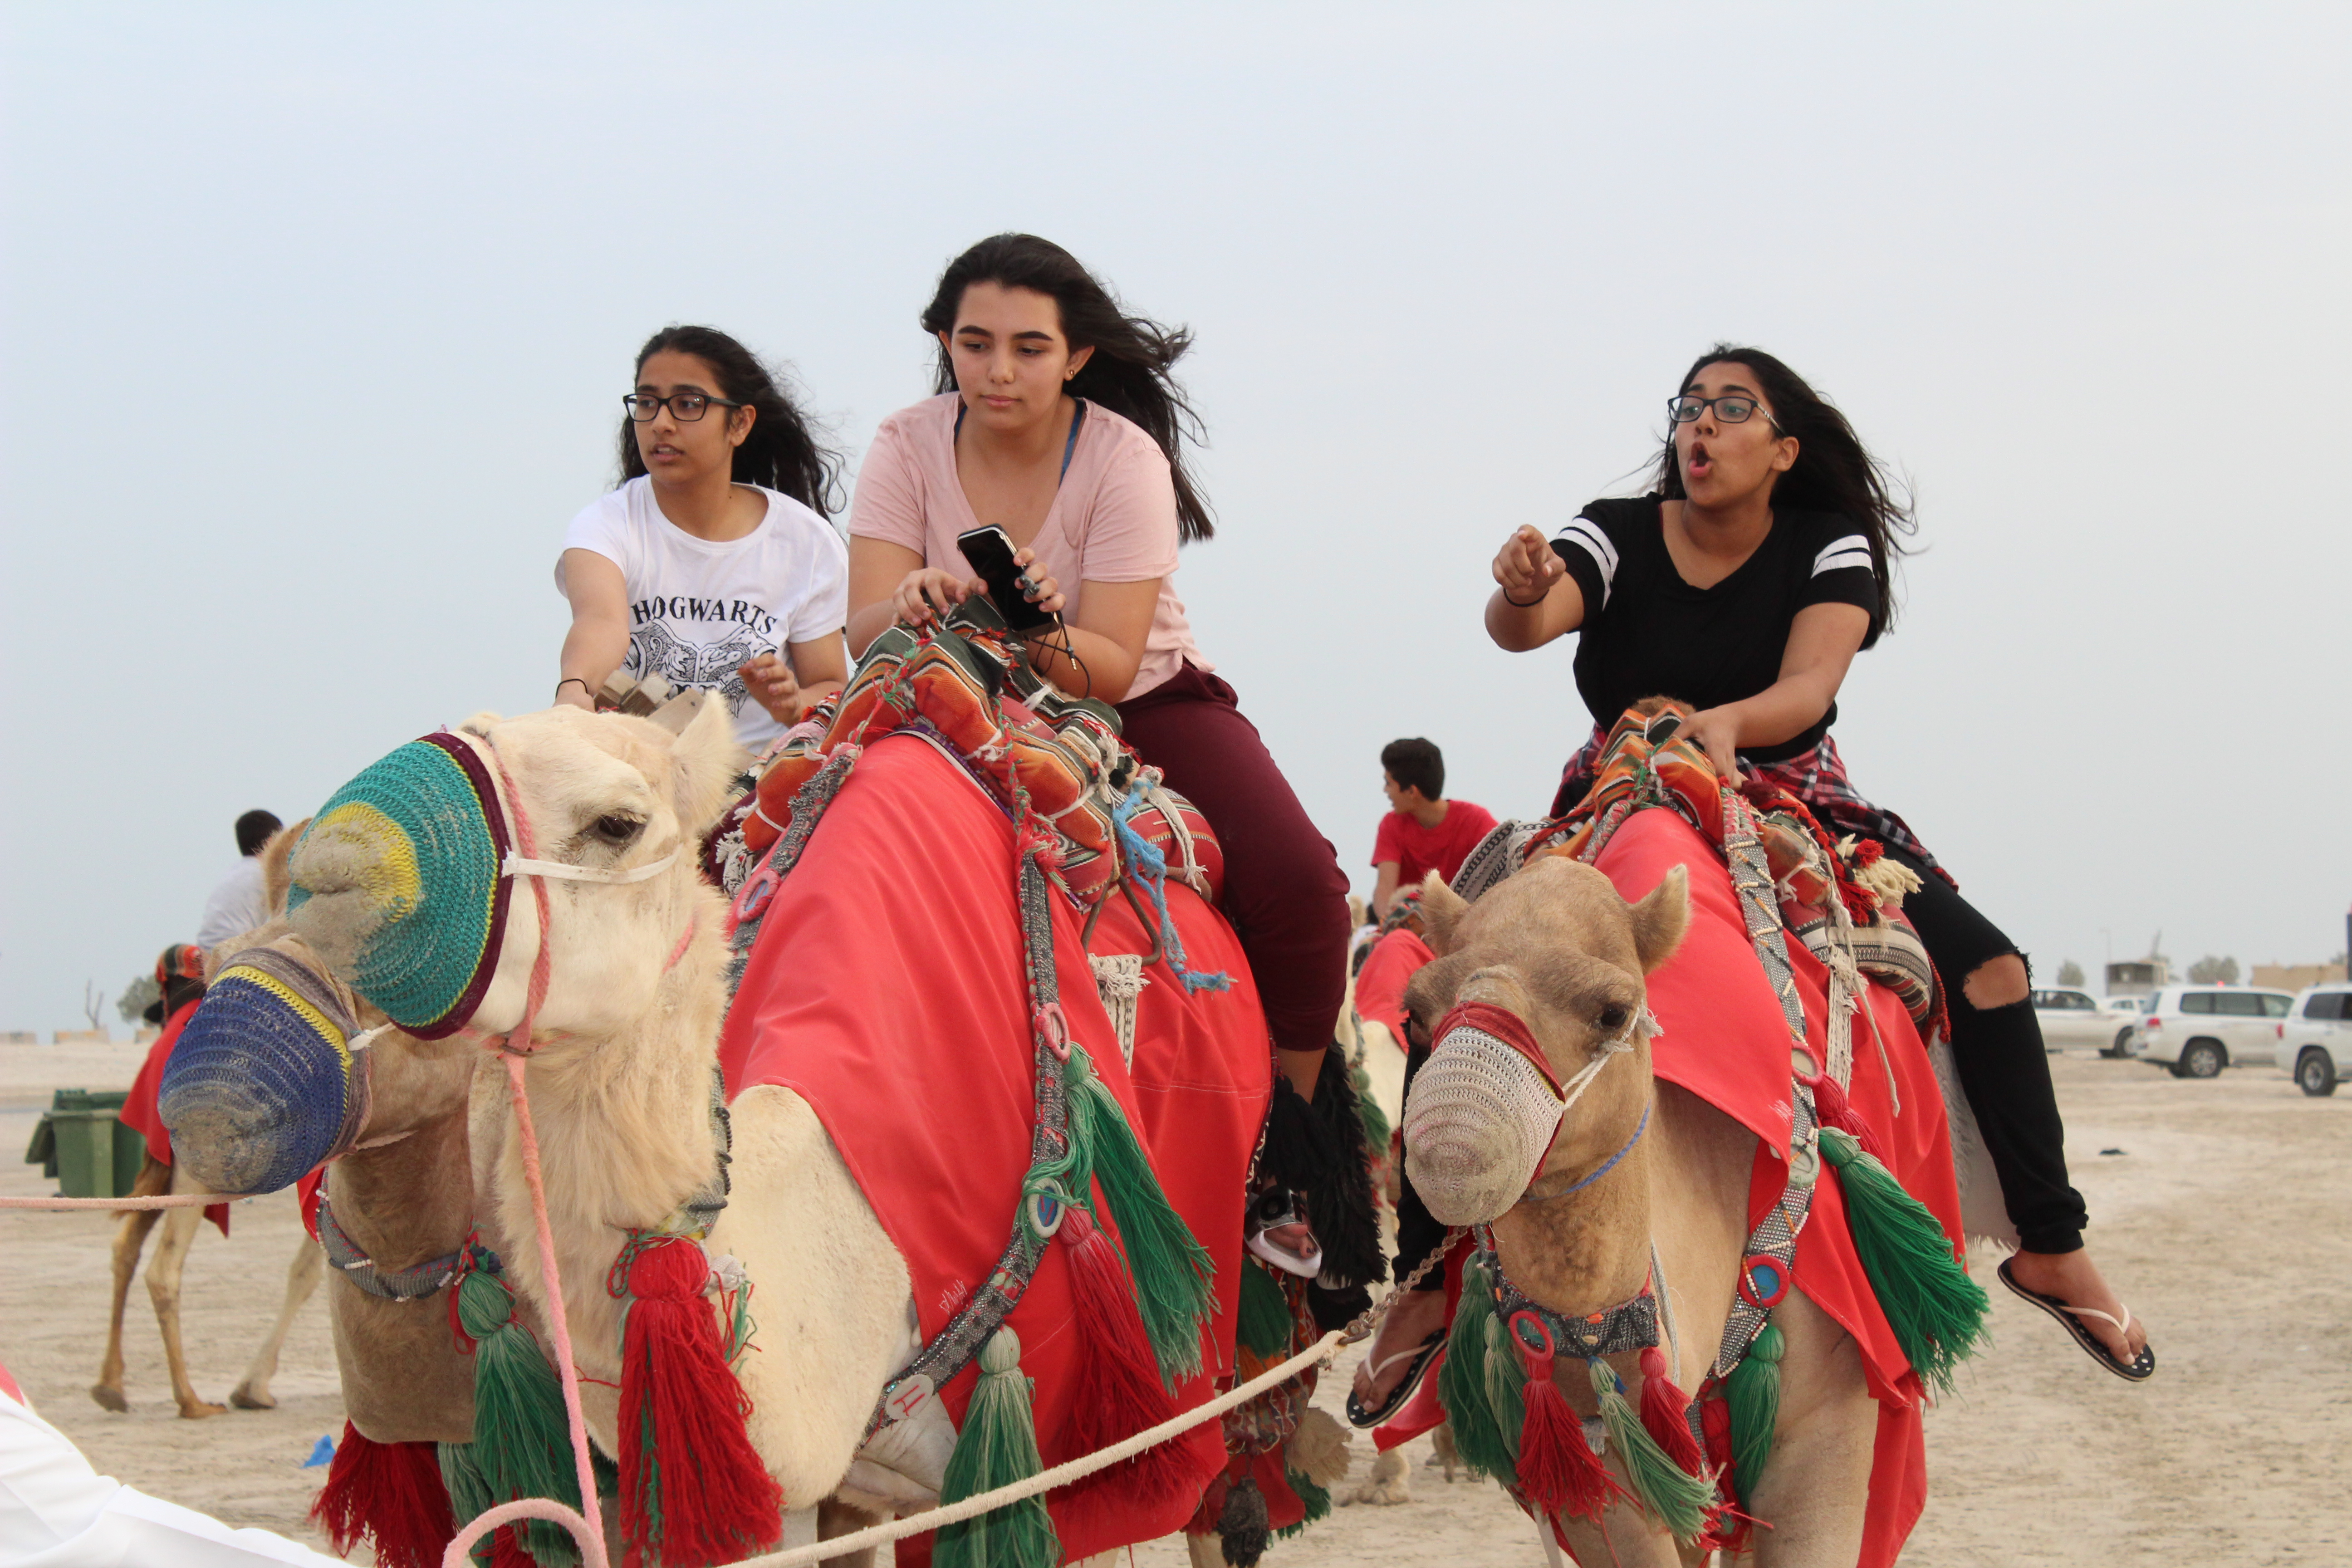 3 female students riding camels